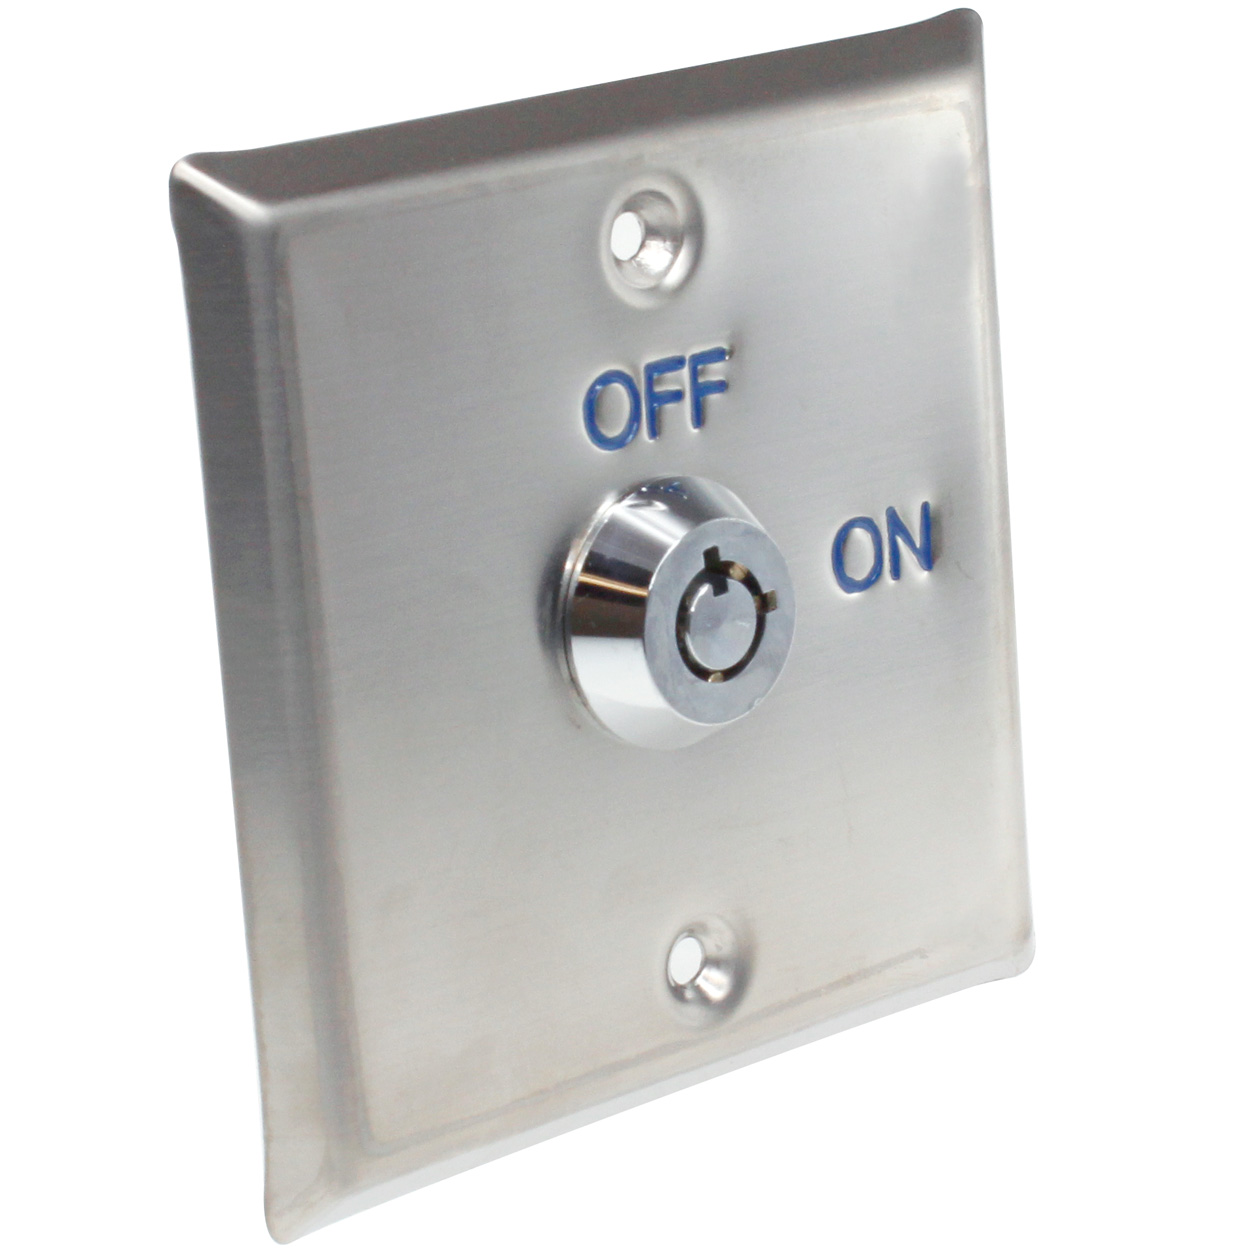 Exit Key Switch Wall Plate  Square  Stainless Steel